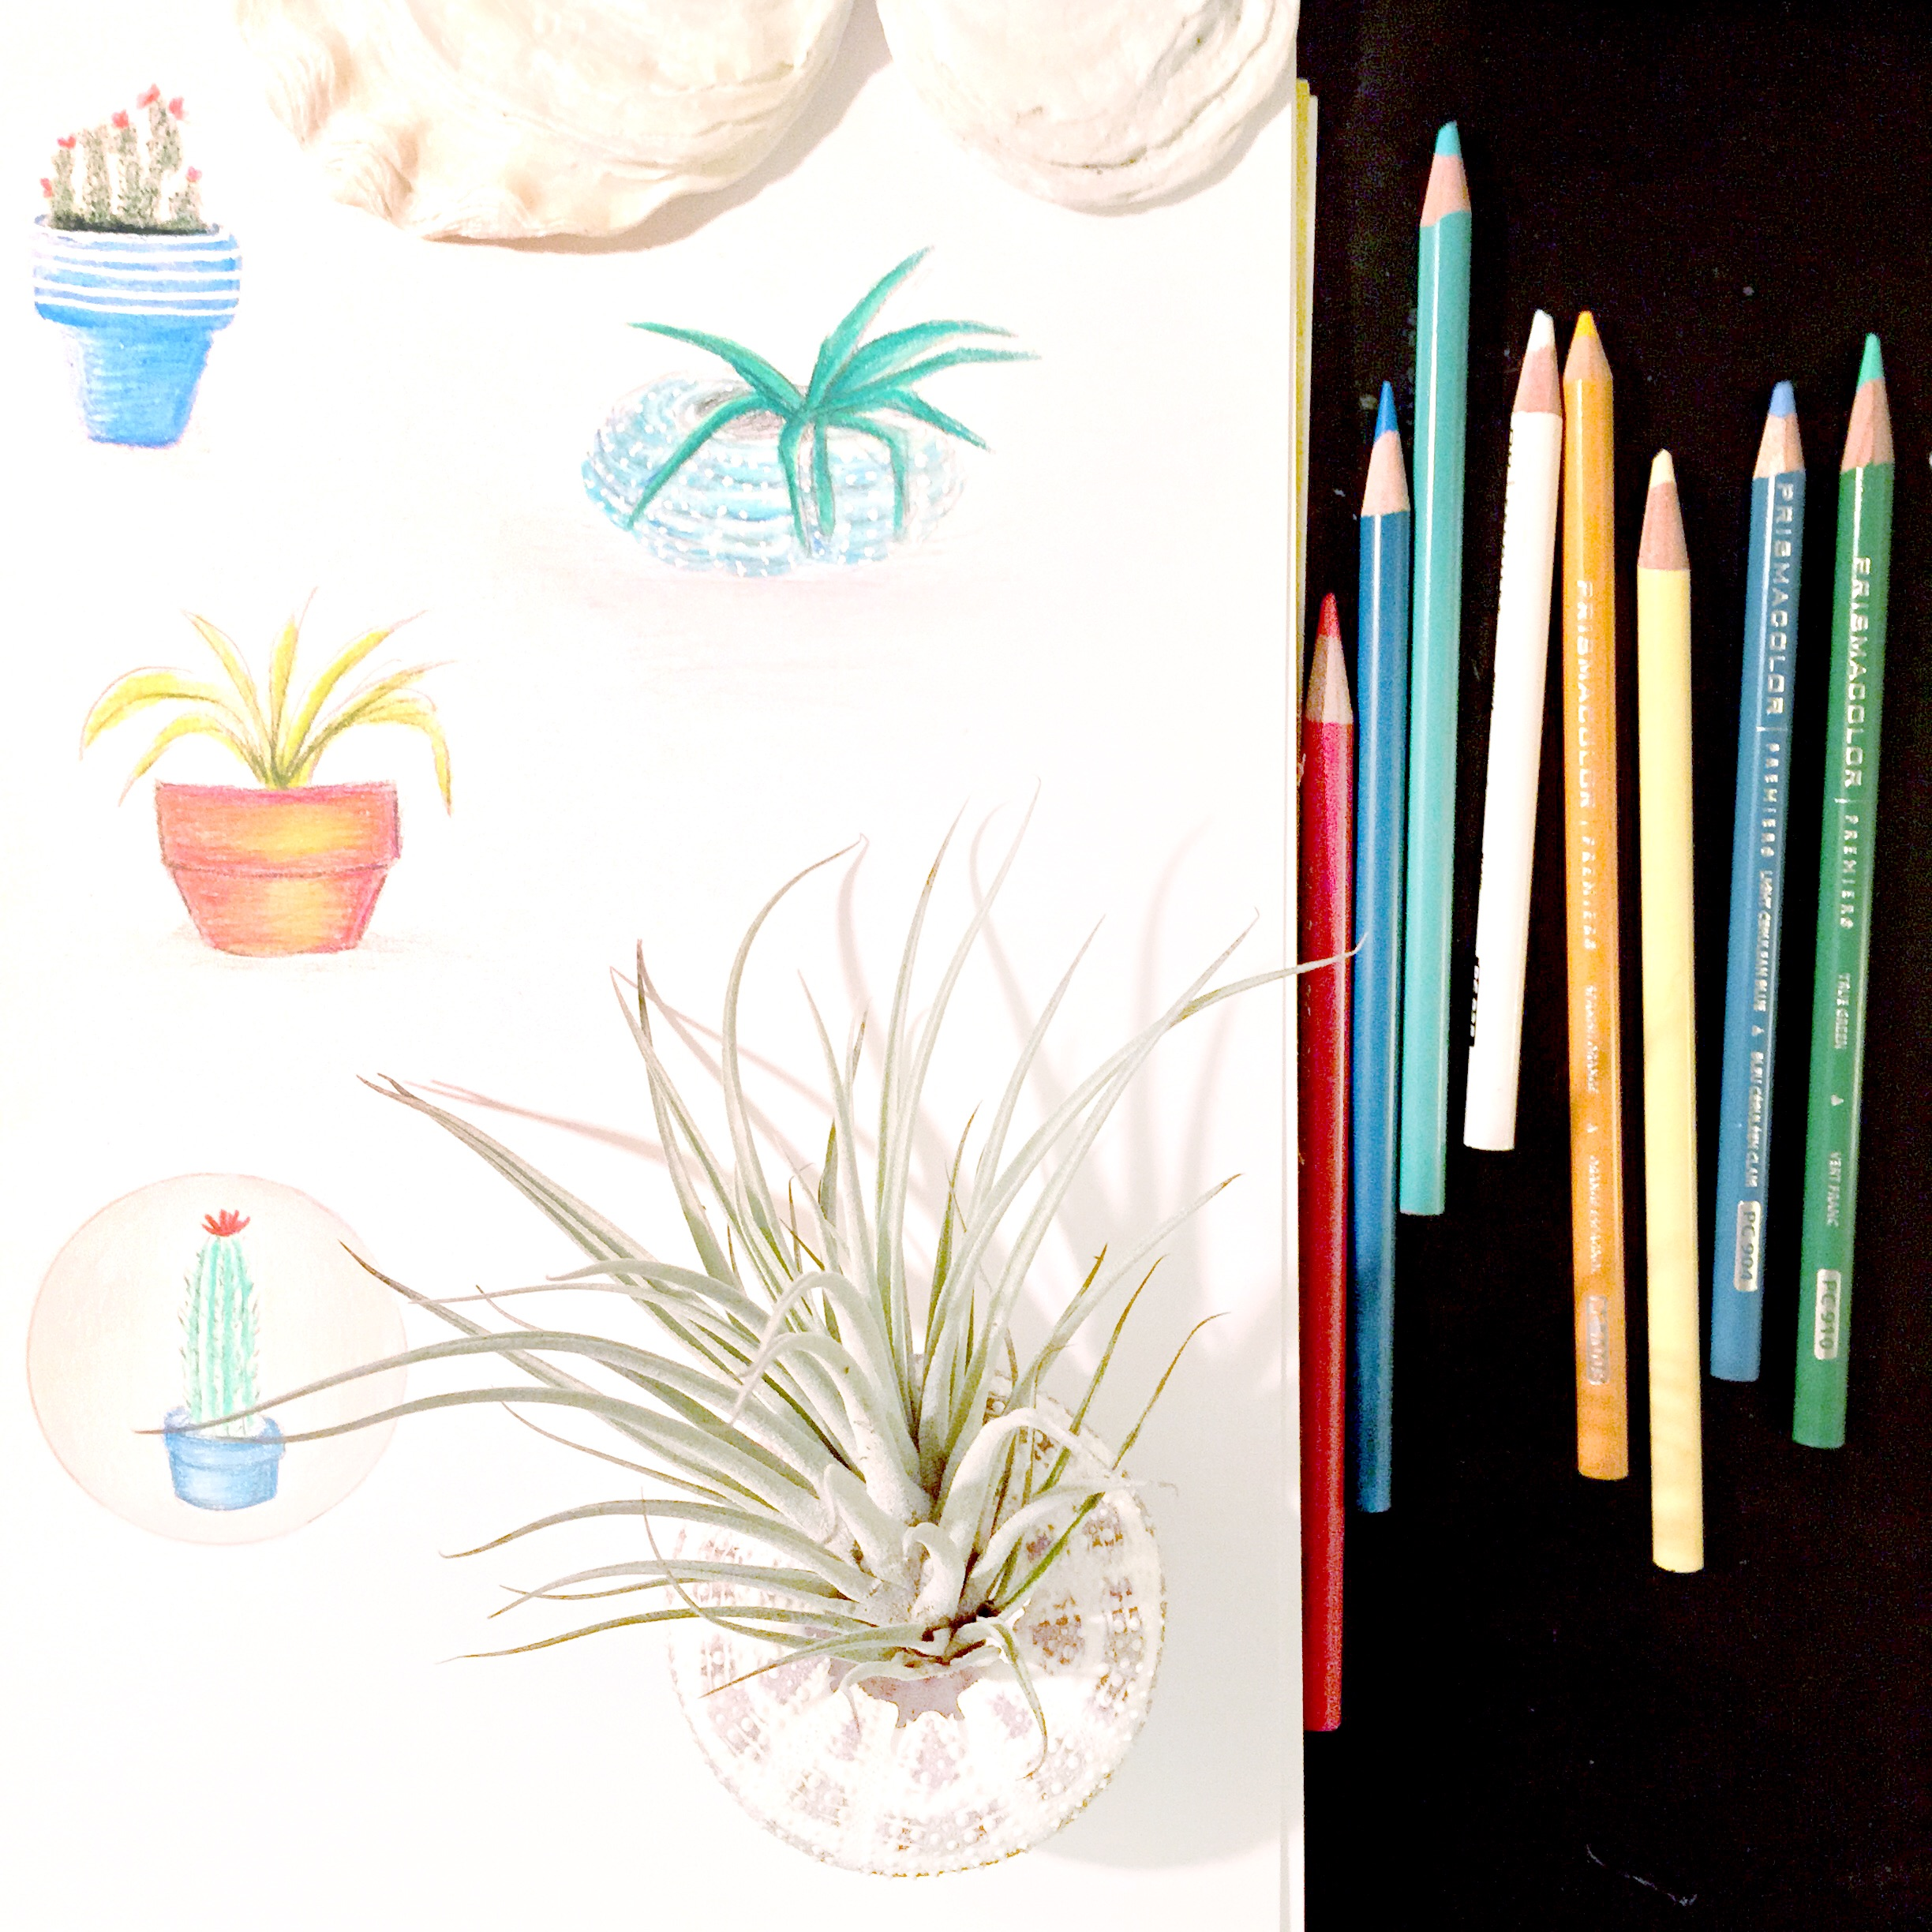 Mini plant sketches with colored pencils.